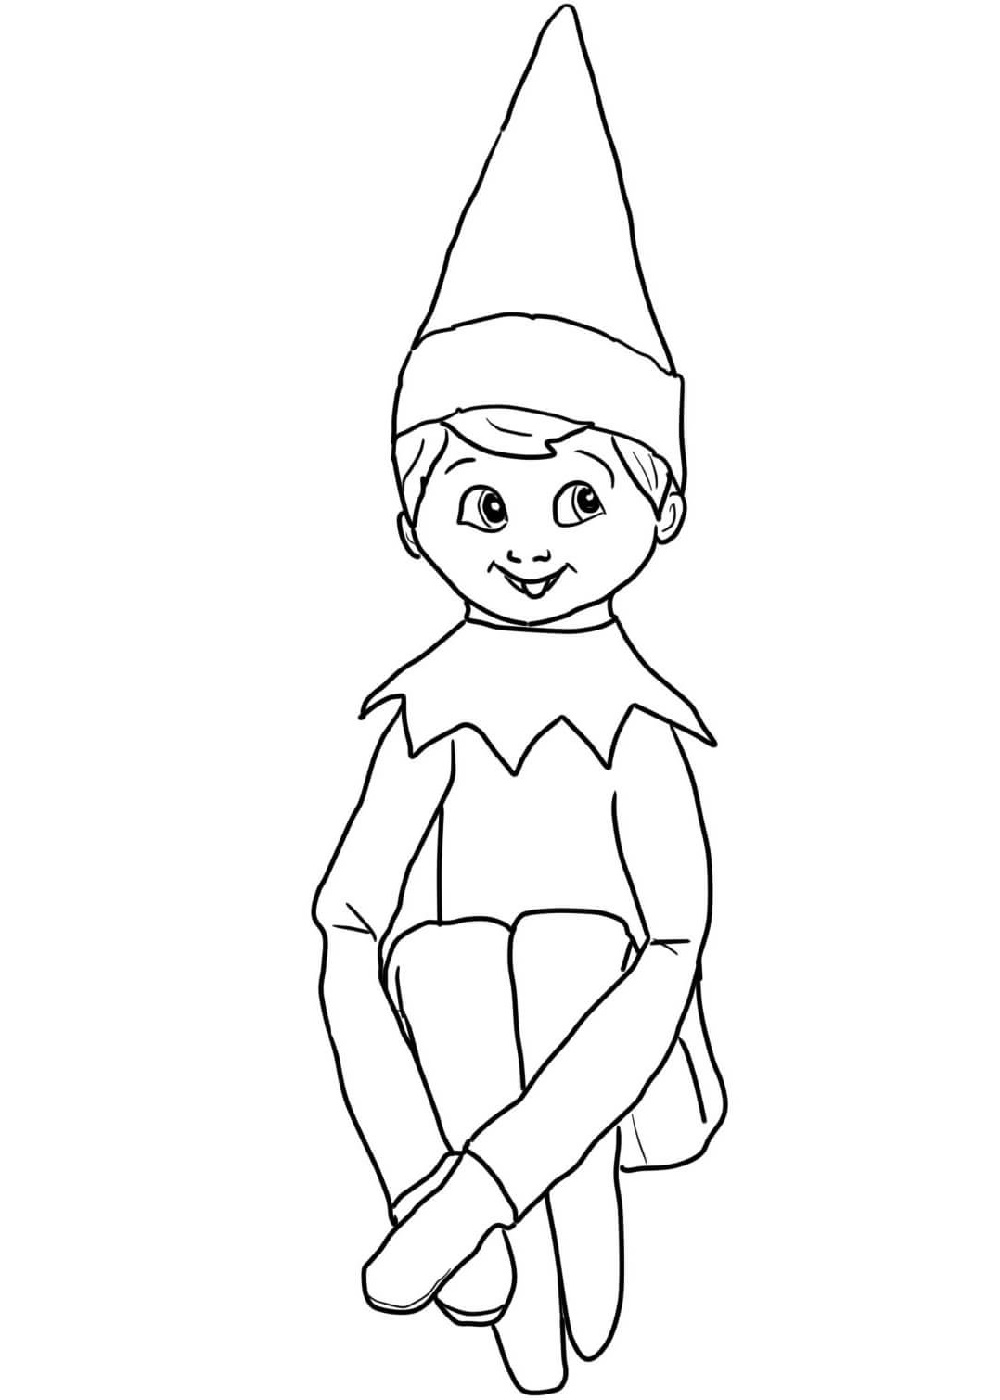 elf on the shelf coloring sheets cute